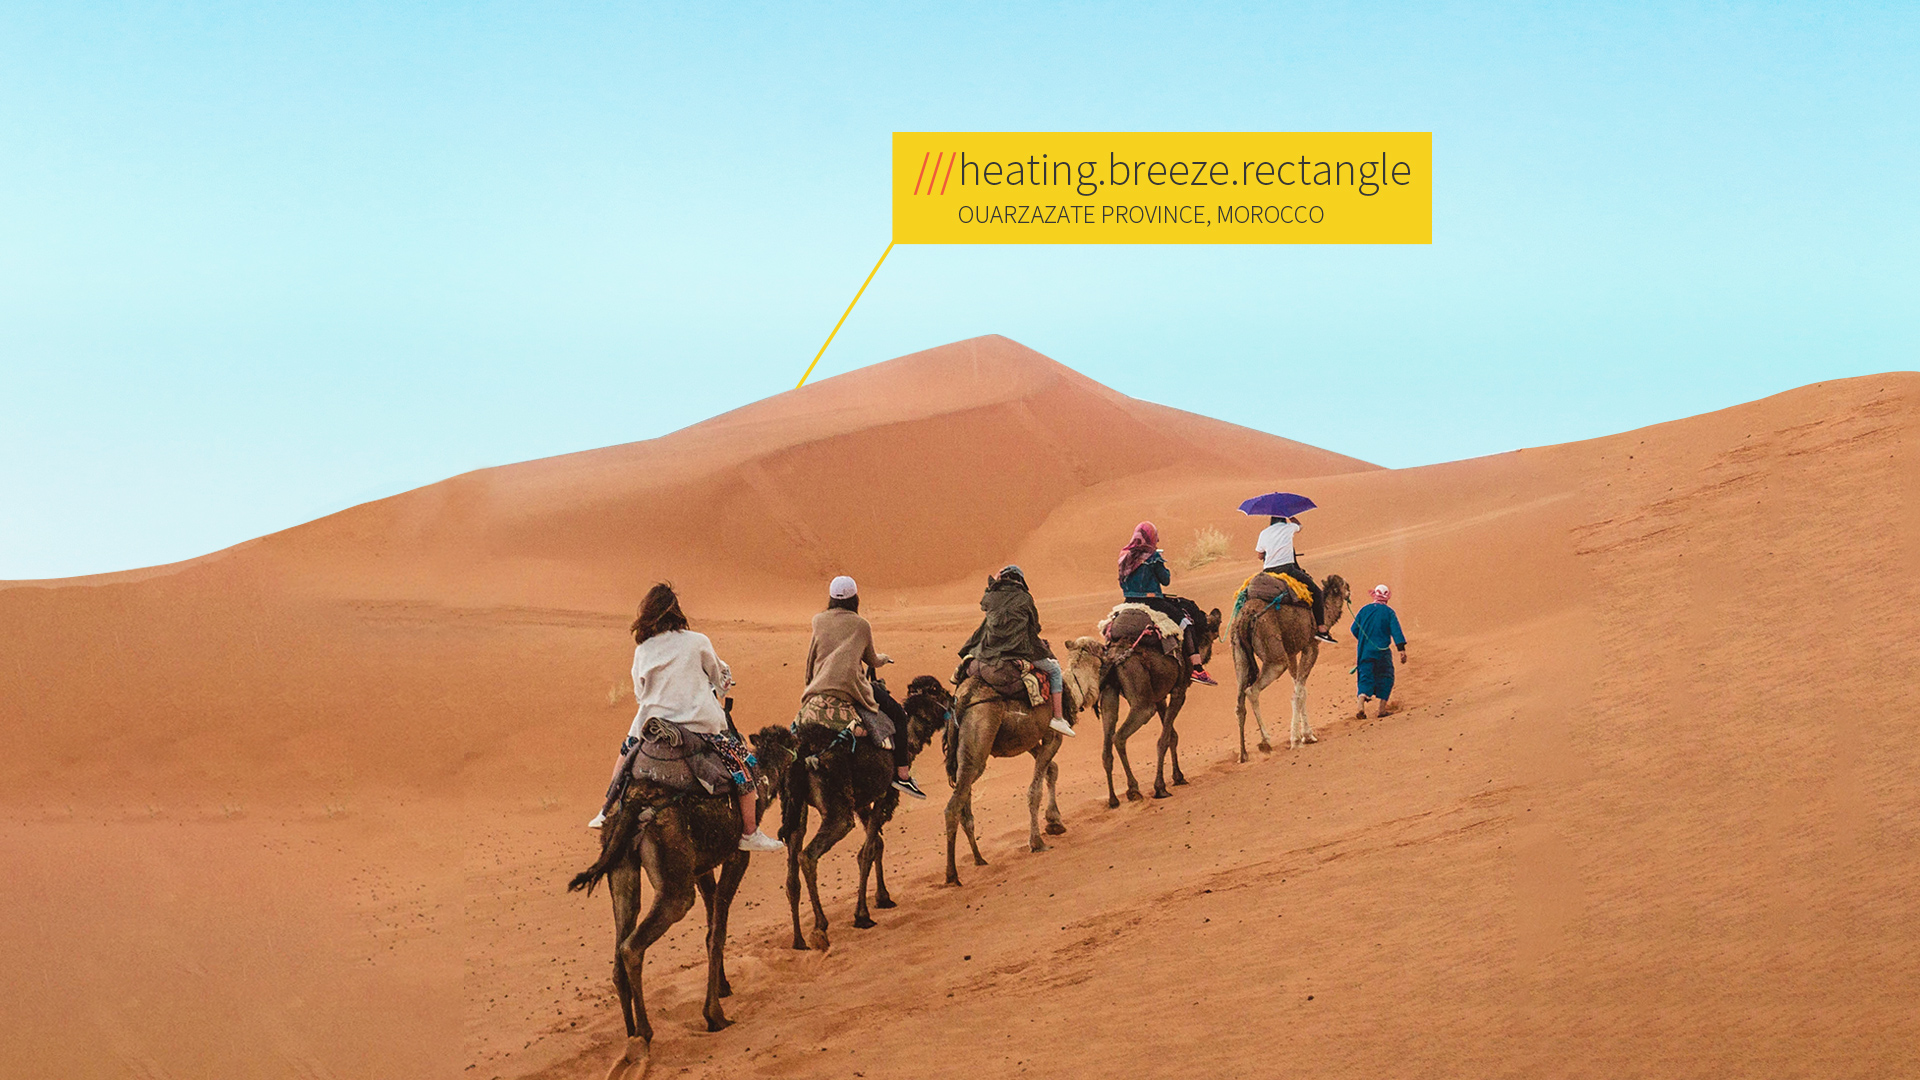 tourists riding camels in desert at 3 word address heating.breeze.rectangle